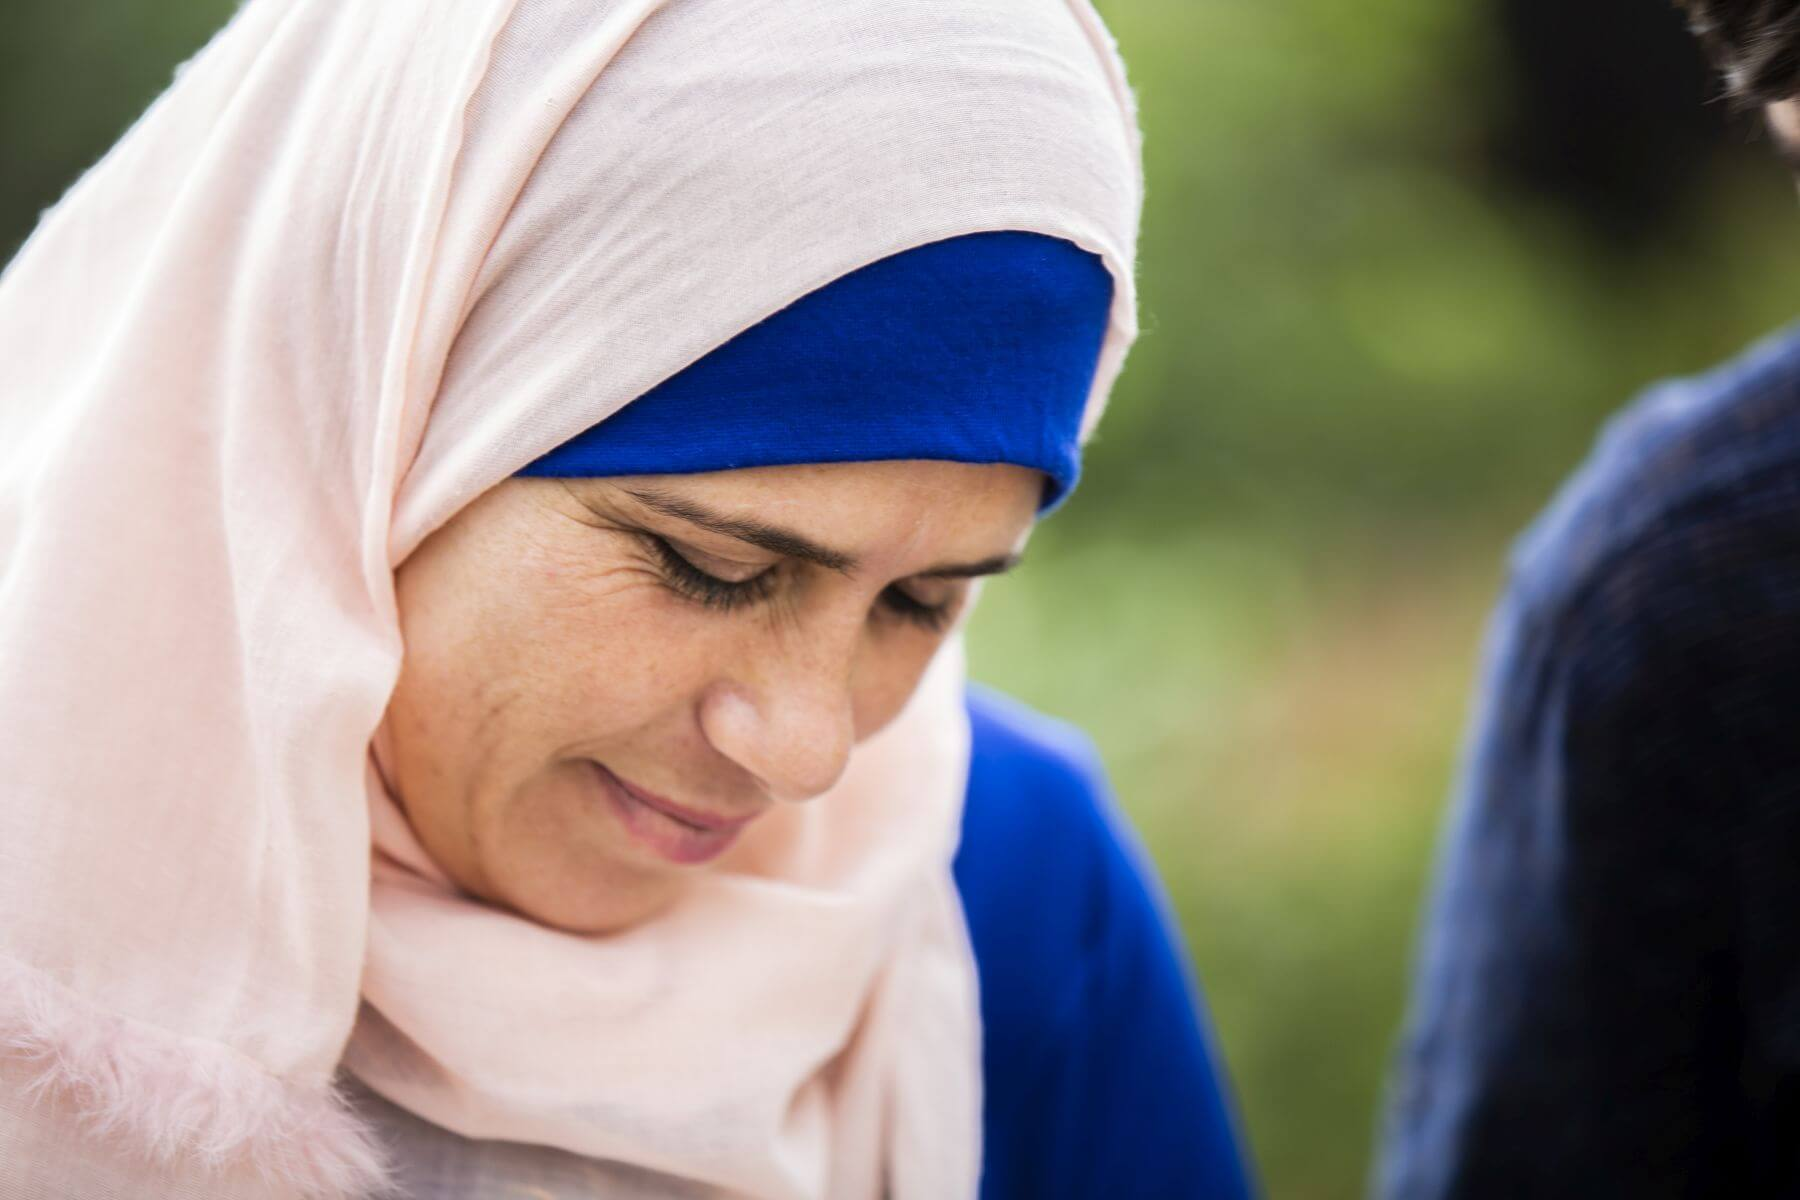 Close up photo of a woman in a headscarf looking down with a small smile.